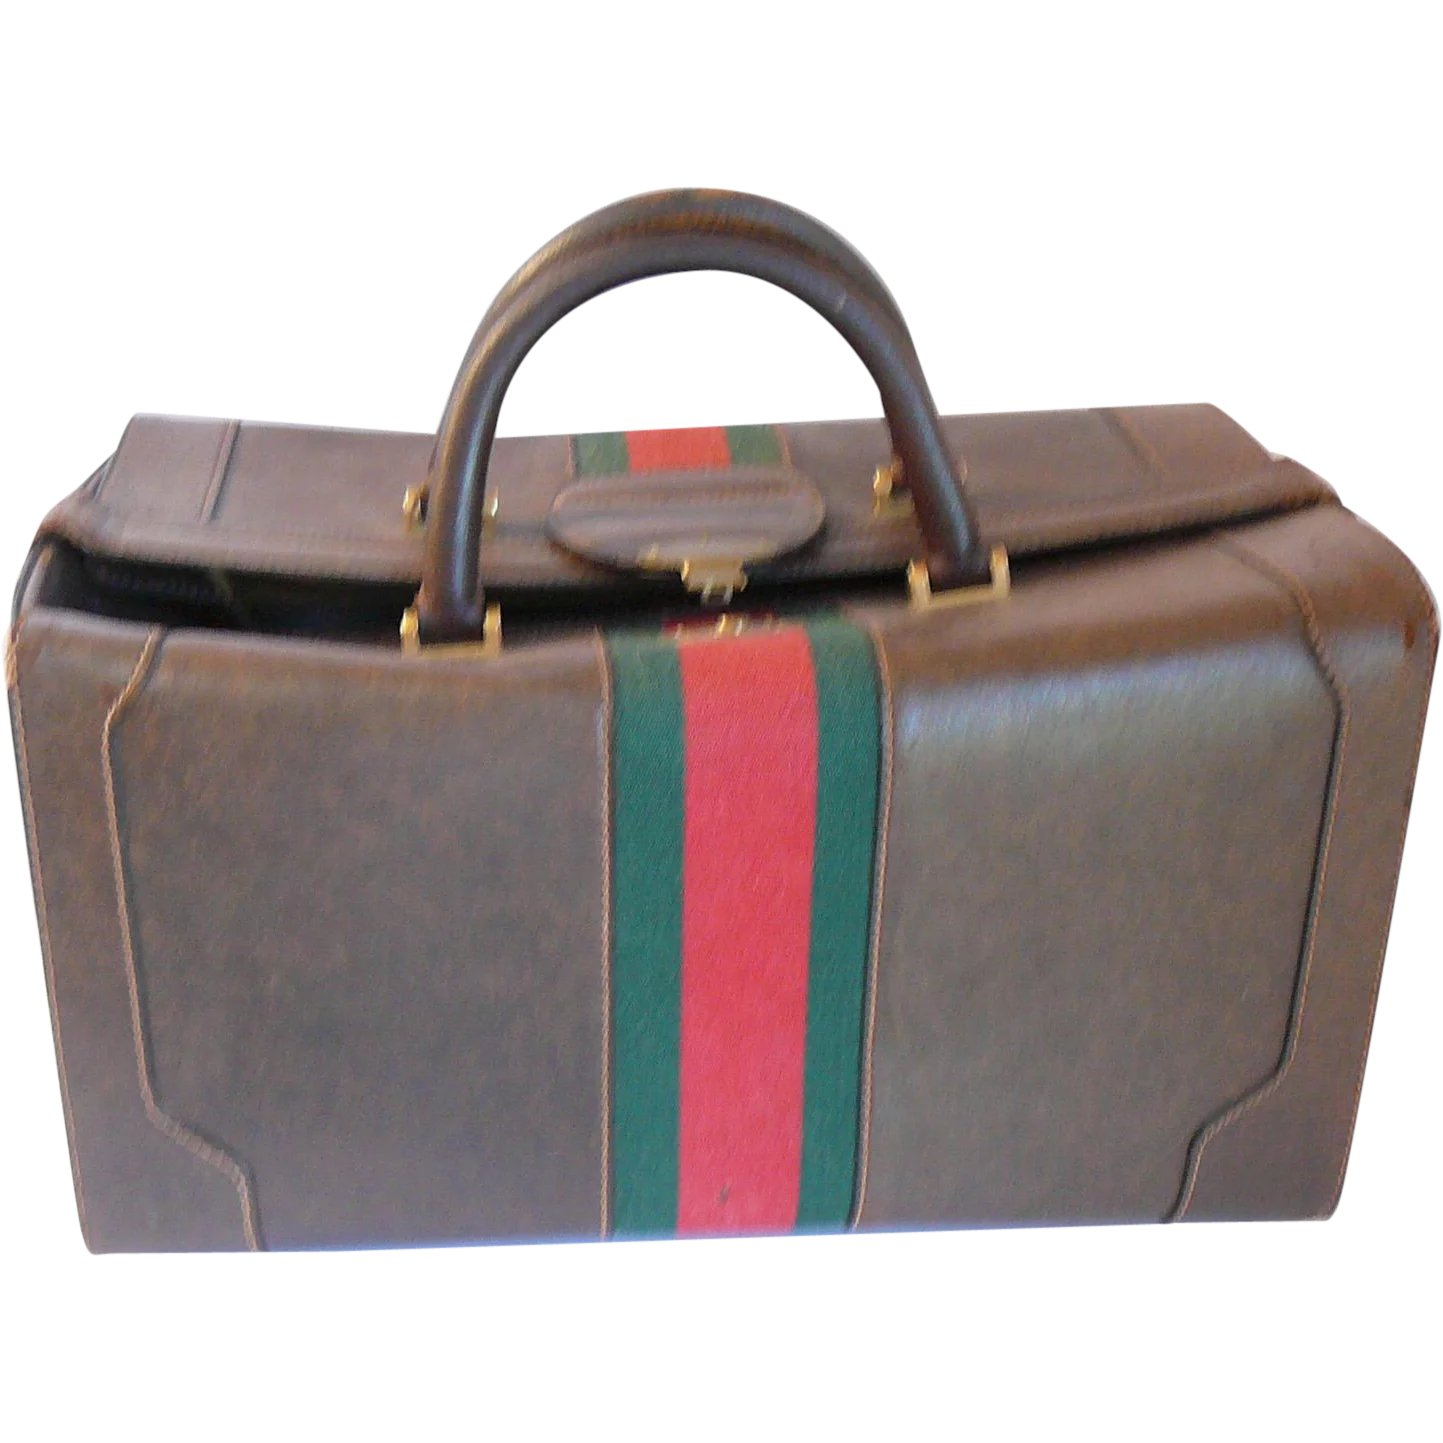 971868fa7 Vintage 1970s Gucci Pigskin Leather LARGE Travel Case : Tiggertiques | Ruby  Lane